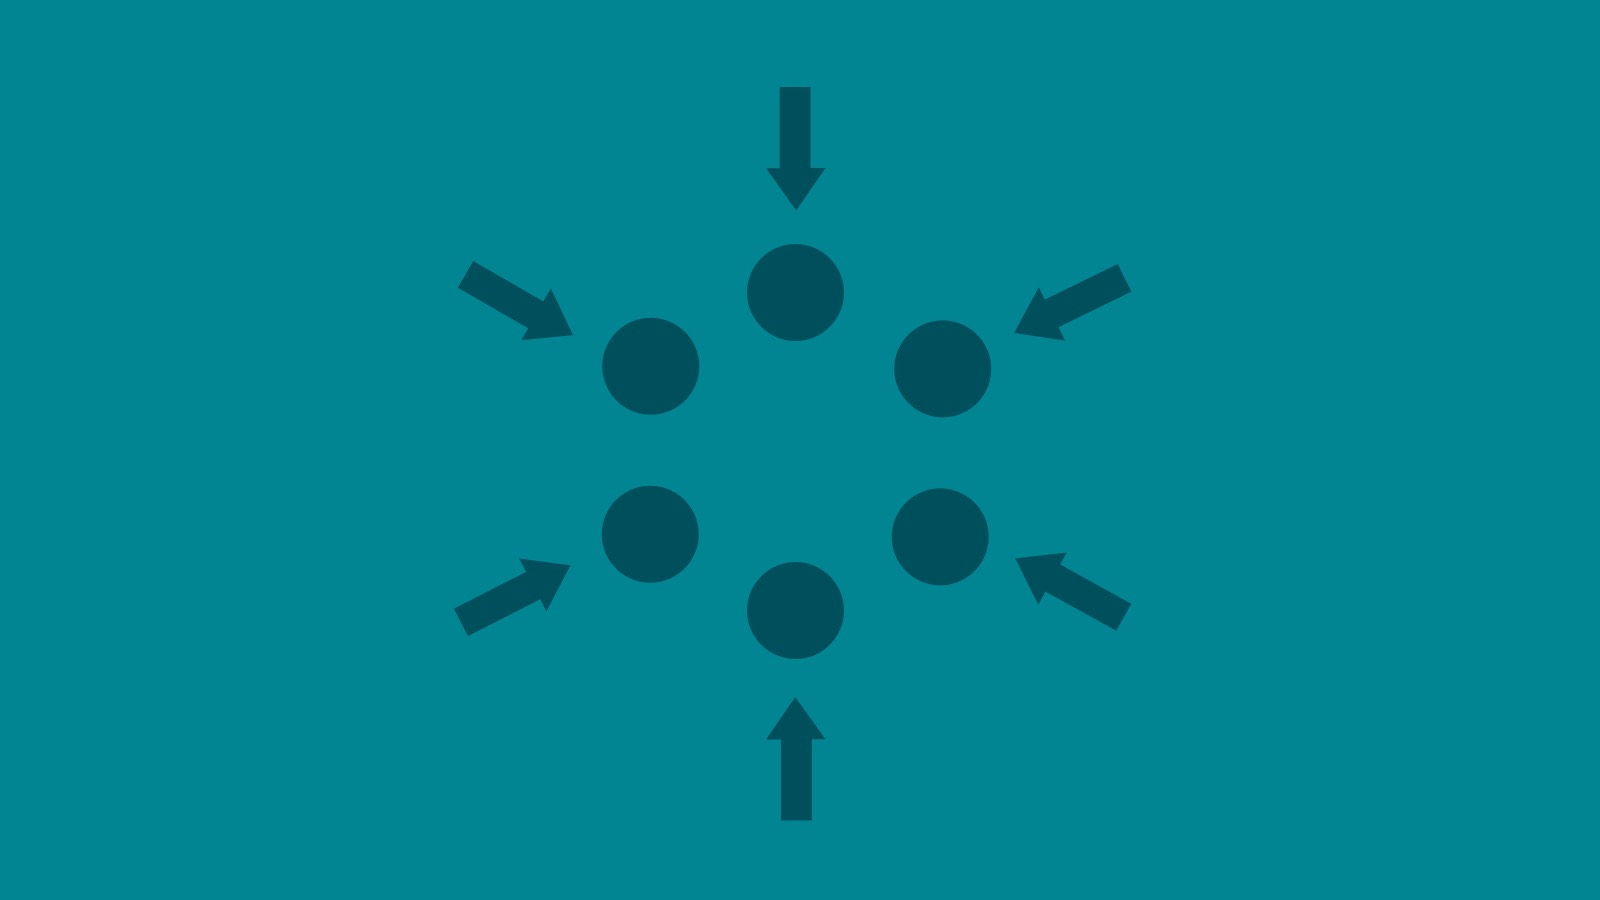 Six blue circles are grouped together, with arrows pointing inward to the center, illustrating how Herman Miller's environmental advocacy works.